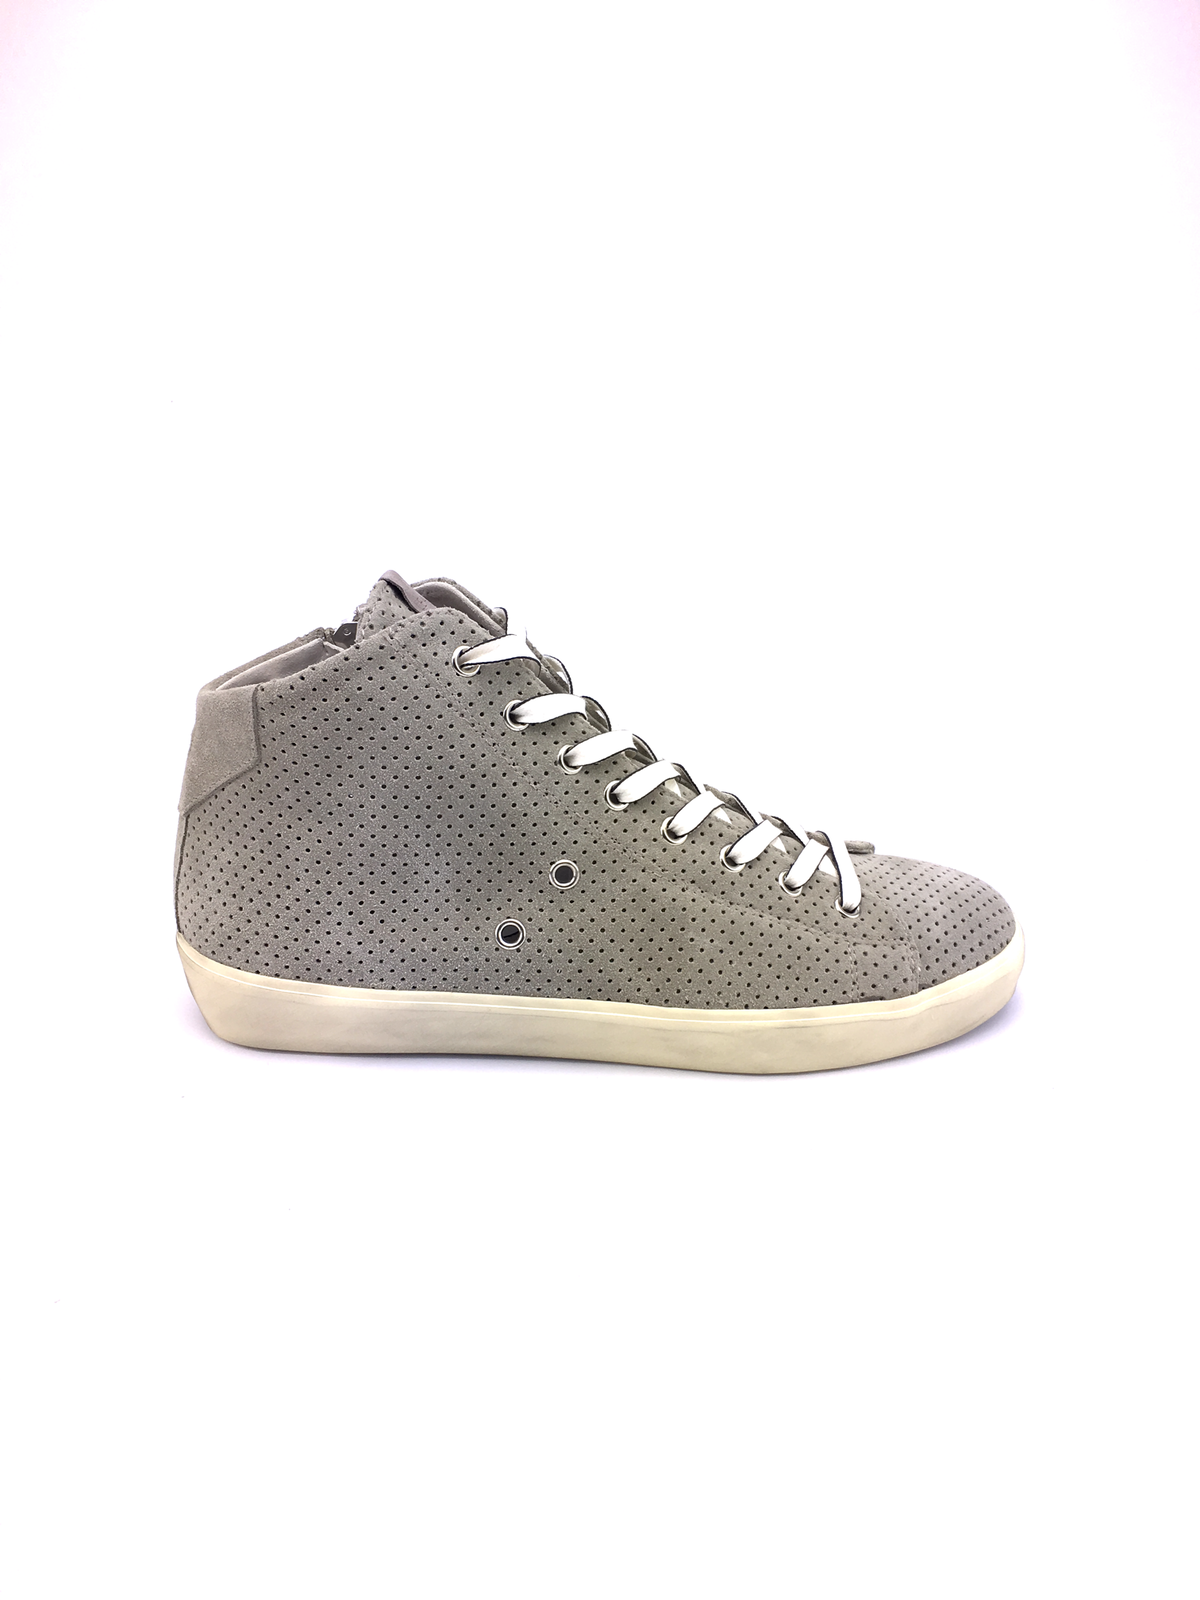 Leather Crown suede taupe mid sneakers